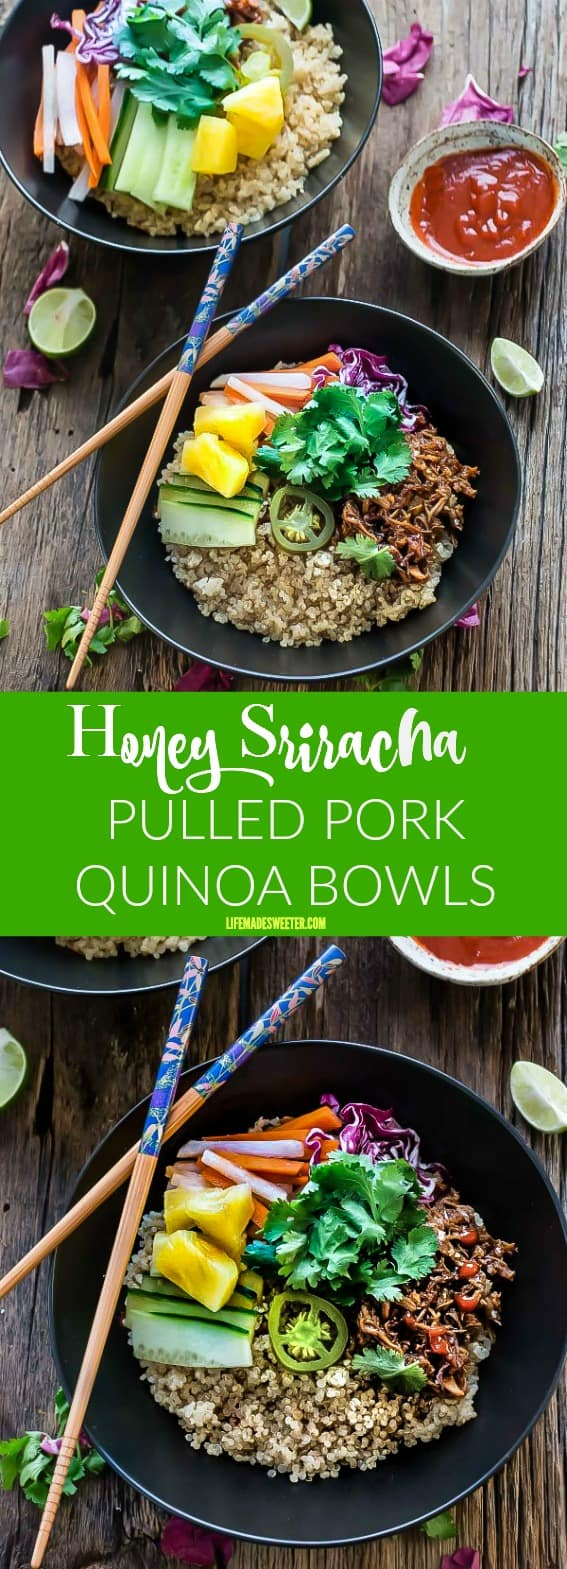 Slow Cooker Honey Sriracha Pulled Pork Quinoa Bowls are the perfect easy weeknight meal!